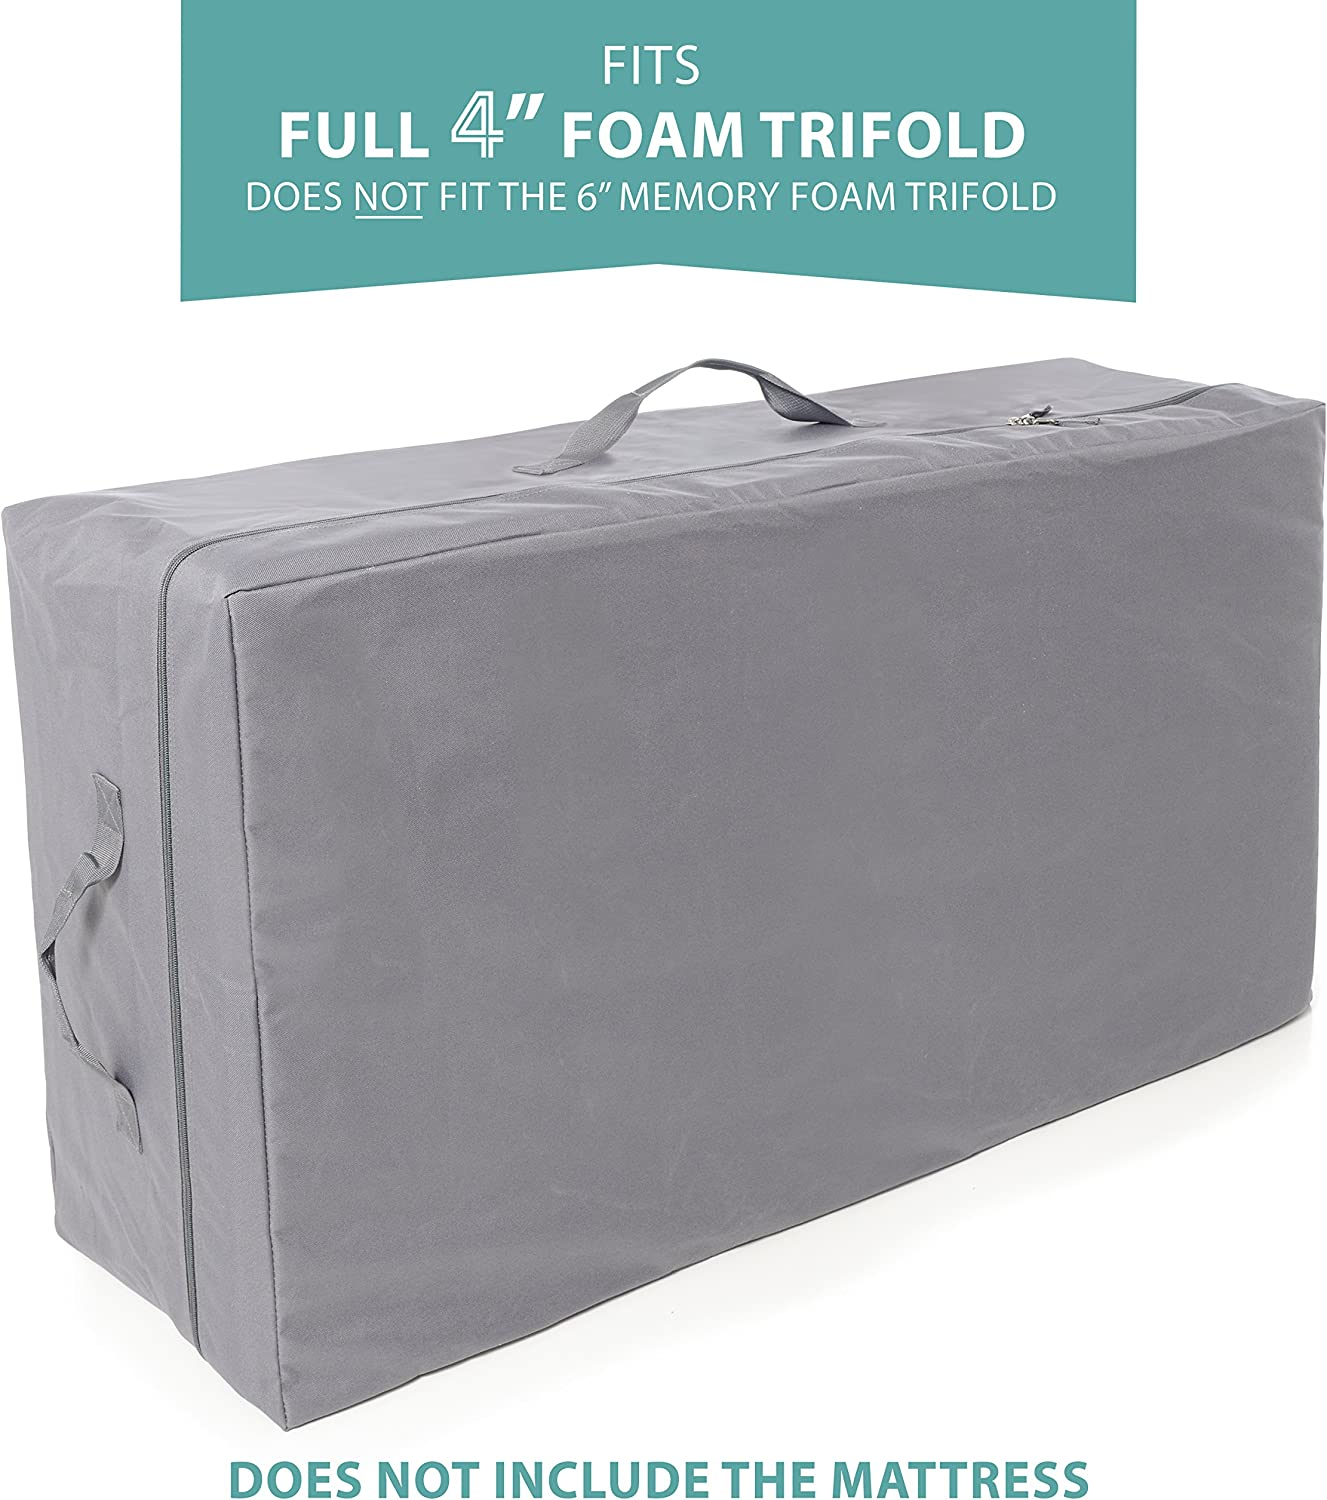 Carry Case Milliard Tri-Fold Mattress   4& 34; Full   Does NOT FIT 6& 34;